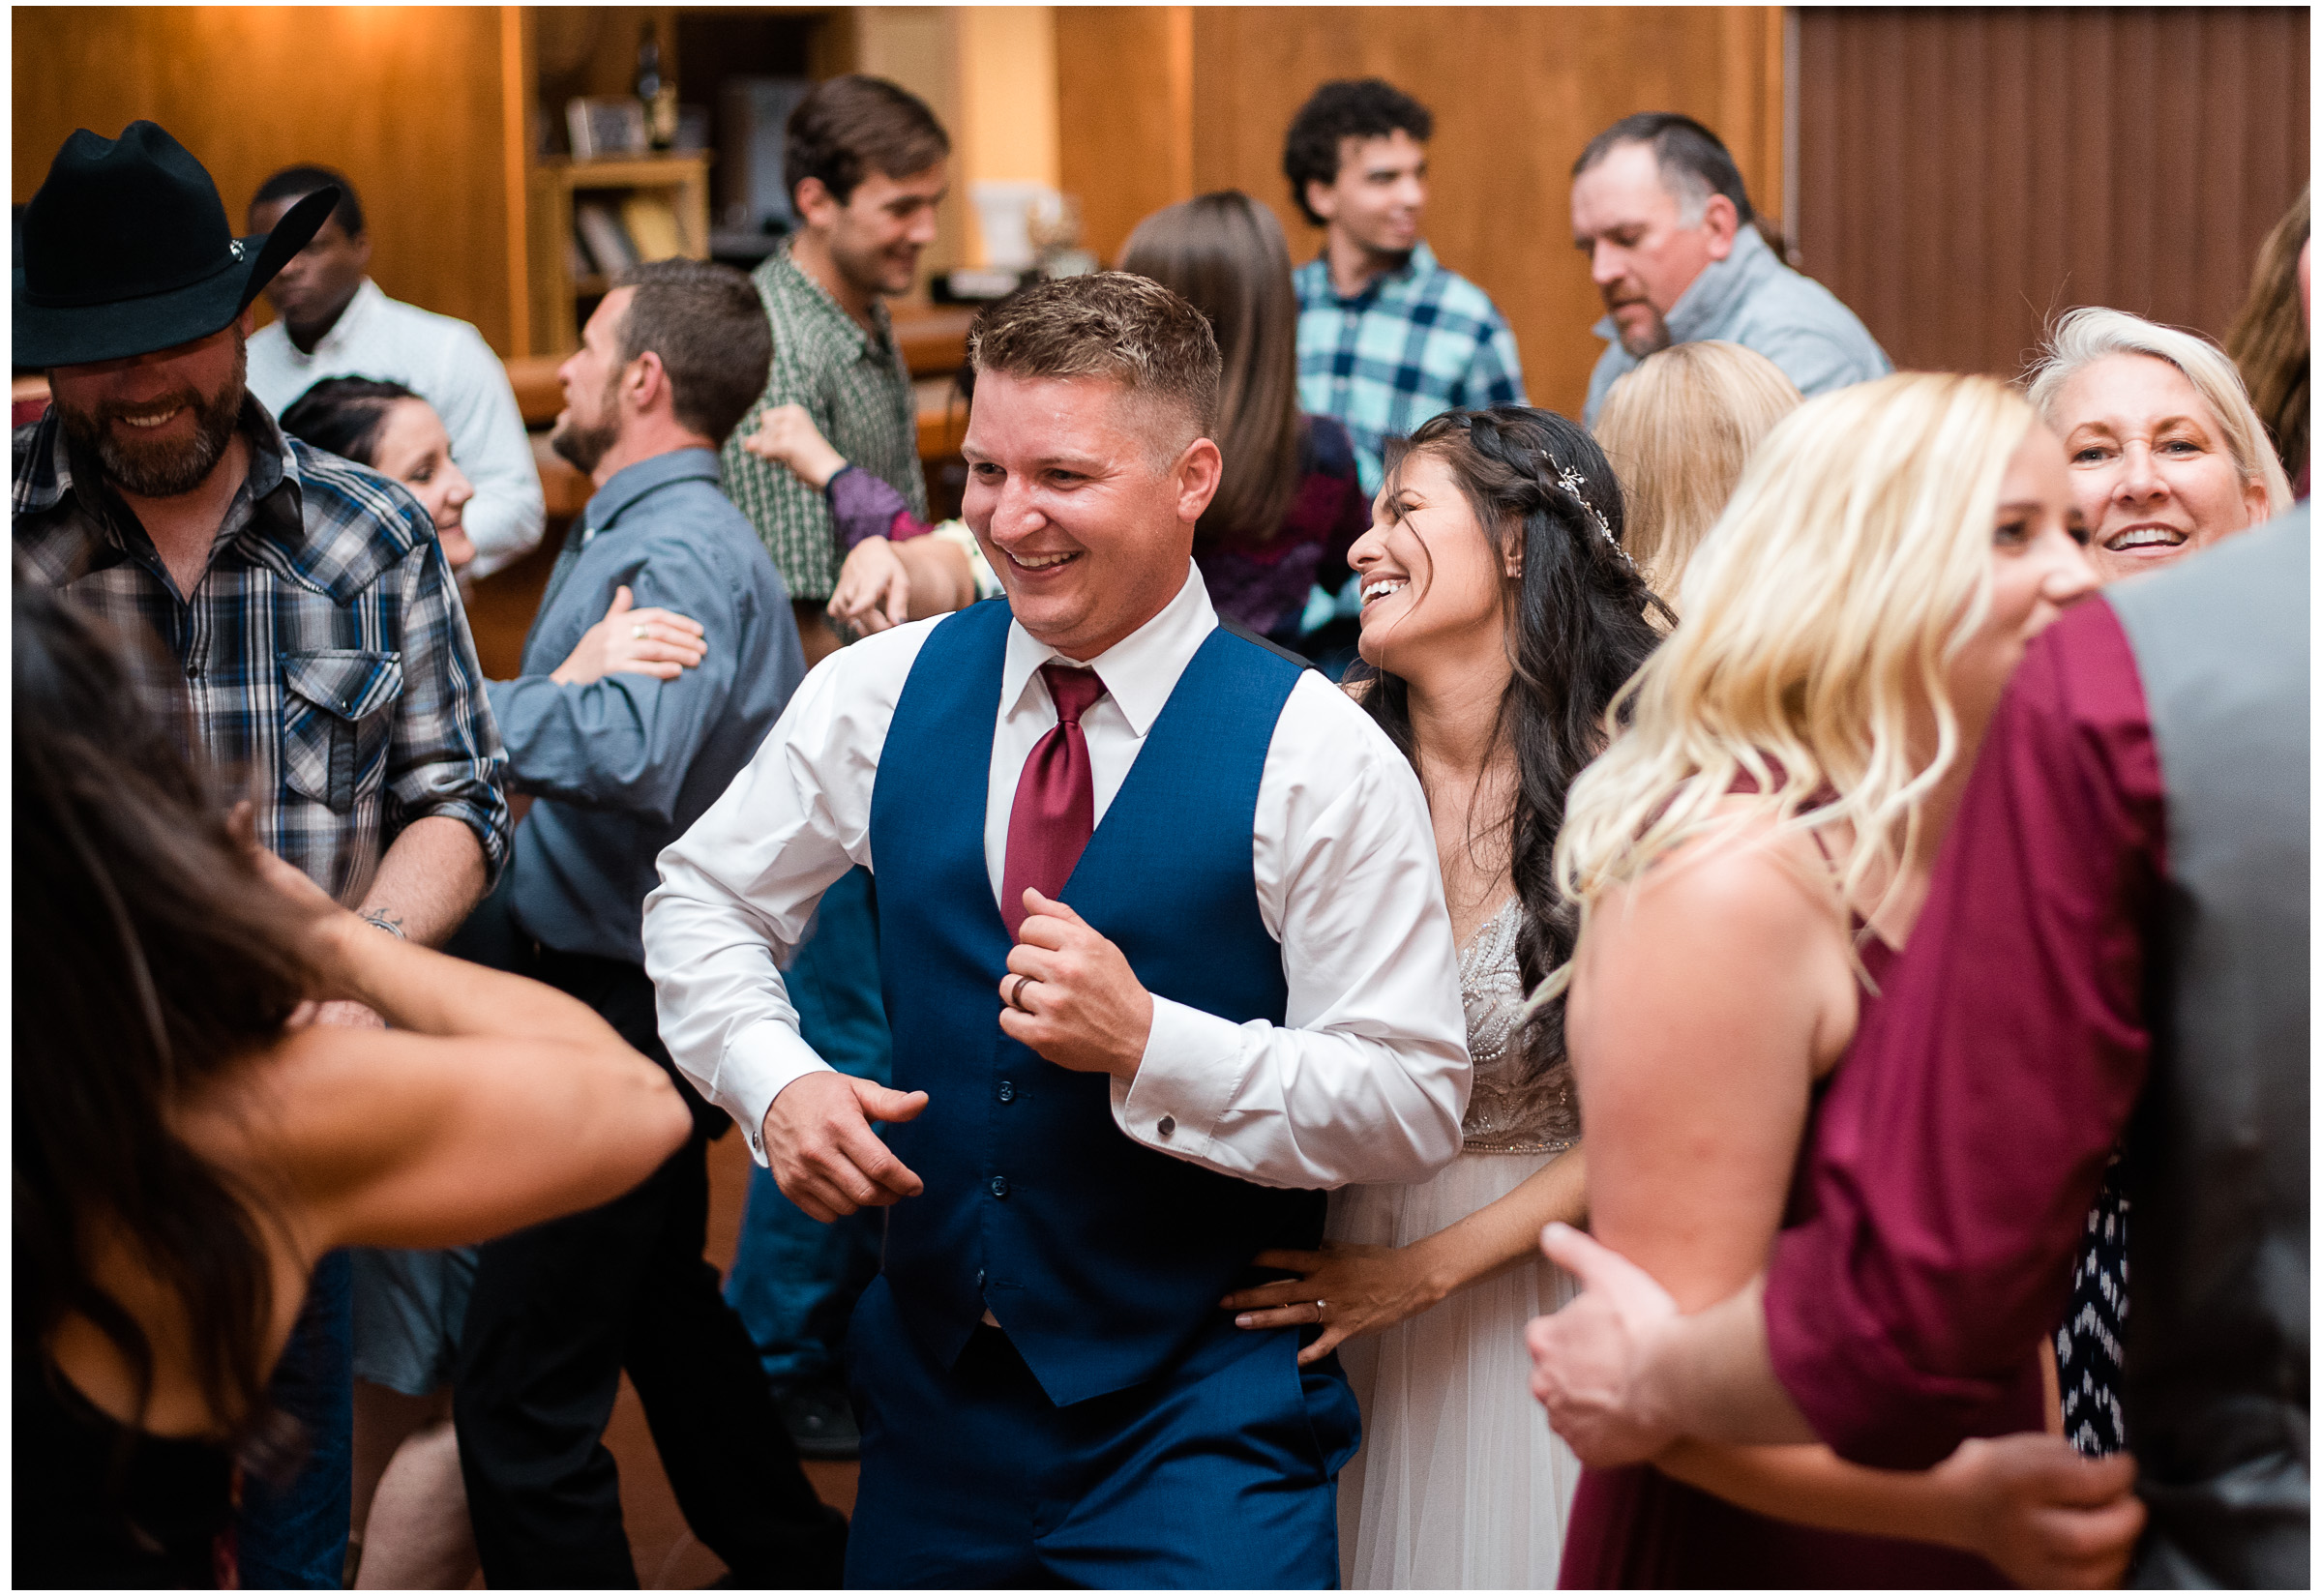 Lincoln Wedding - Sacramento Photographer - Rock Hill Winery - Justin Wilcox Photography - 22.jpg